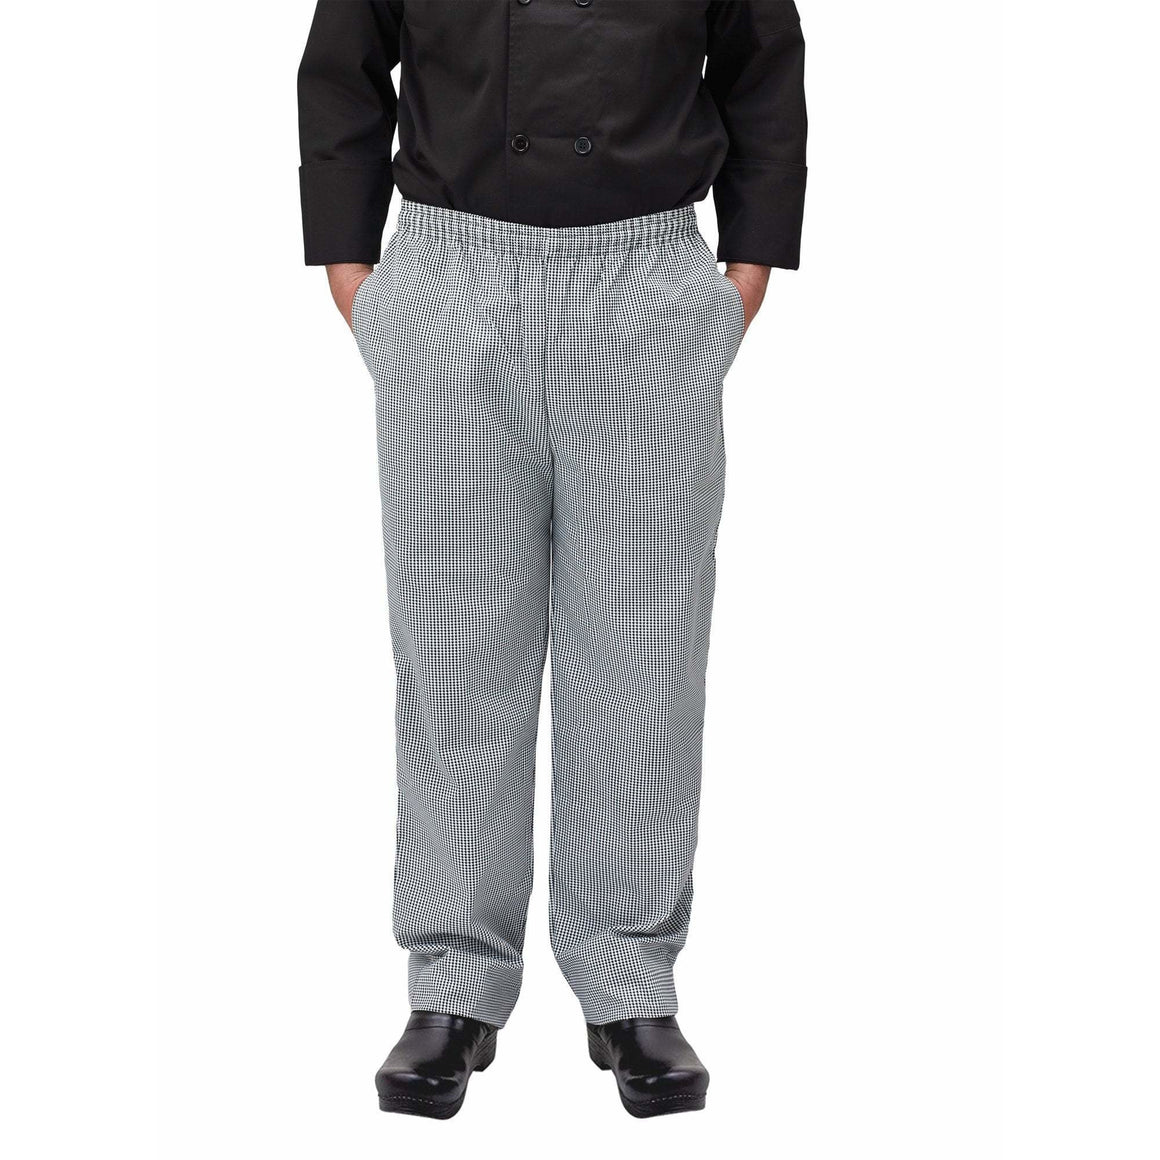 Winco - UNF-4KXXL - Chef pants, houndstooth, 2X - Apparel